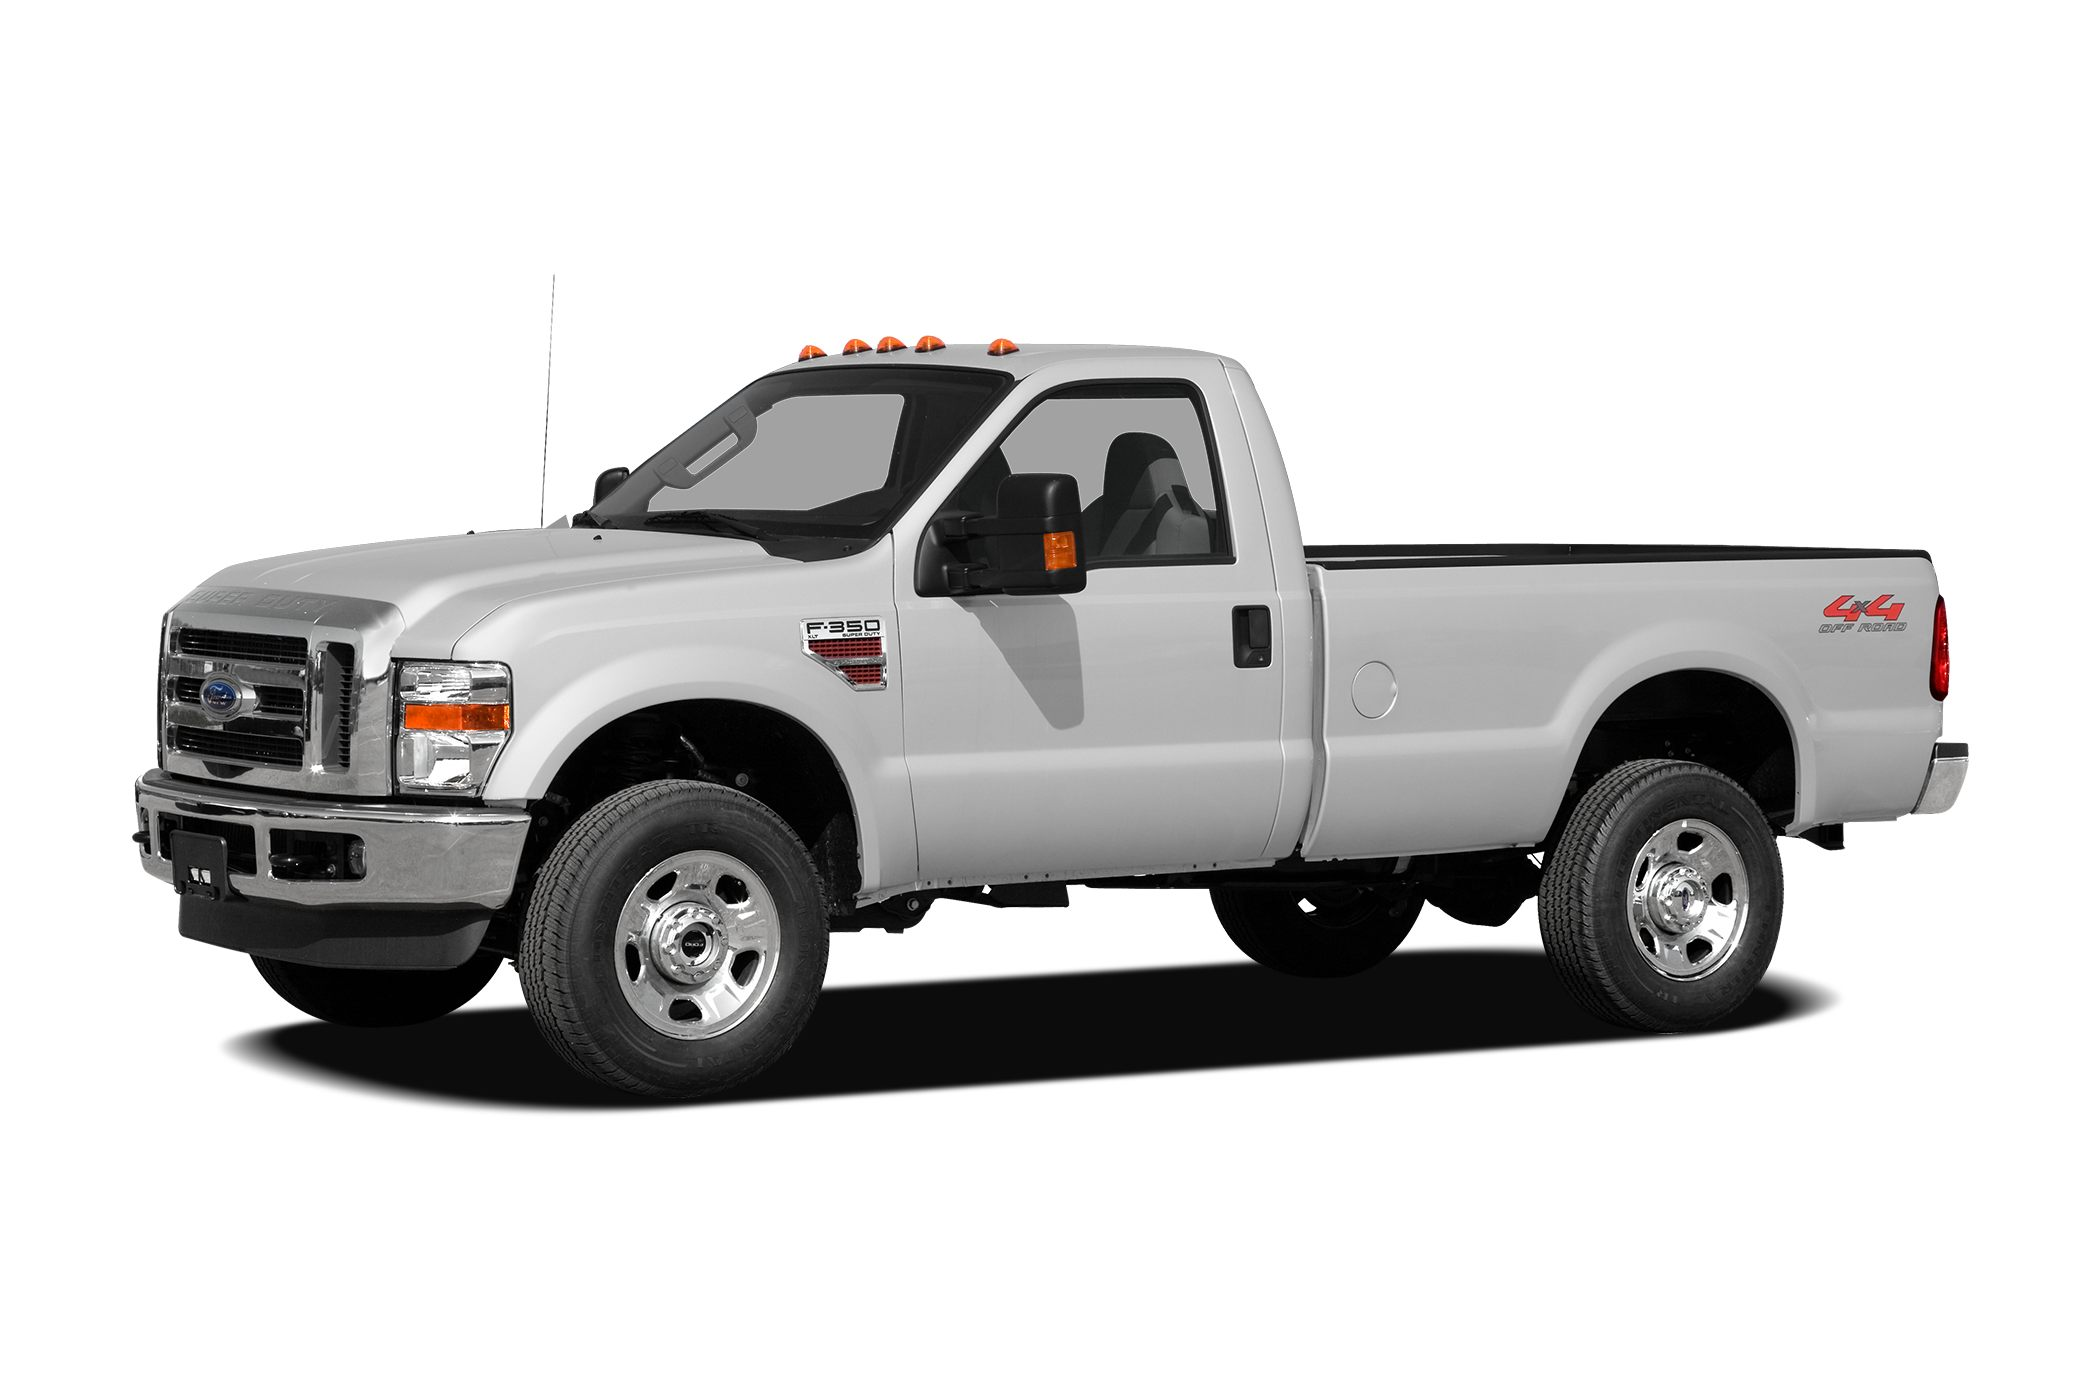 2008 Ford F350 XLT Super Duty Extended Cab Pickup for sale in Goshen for $19,314 with 170,060 miles